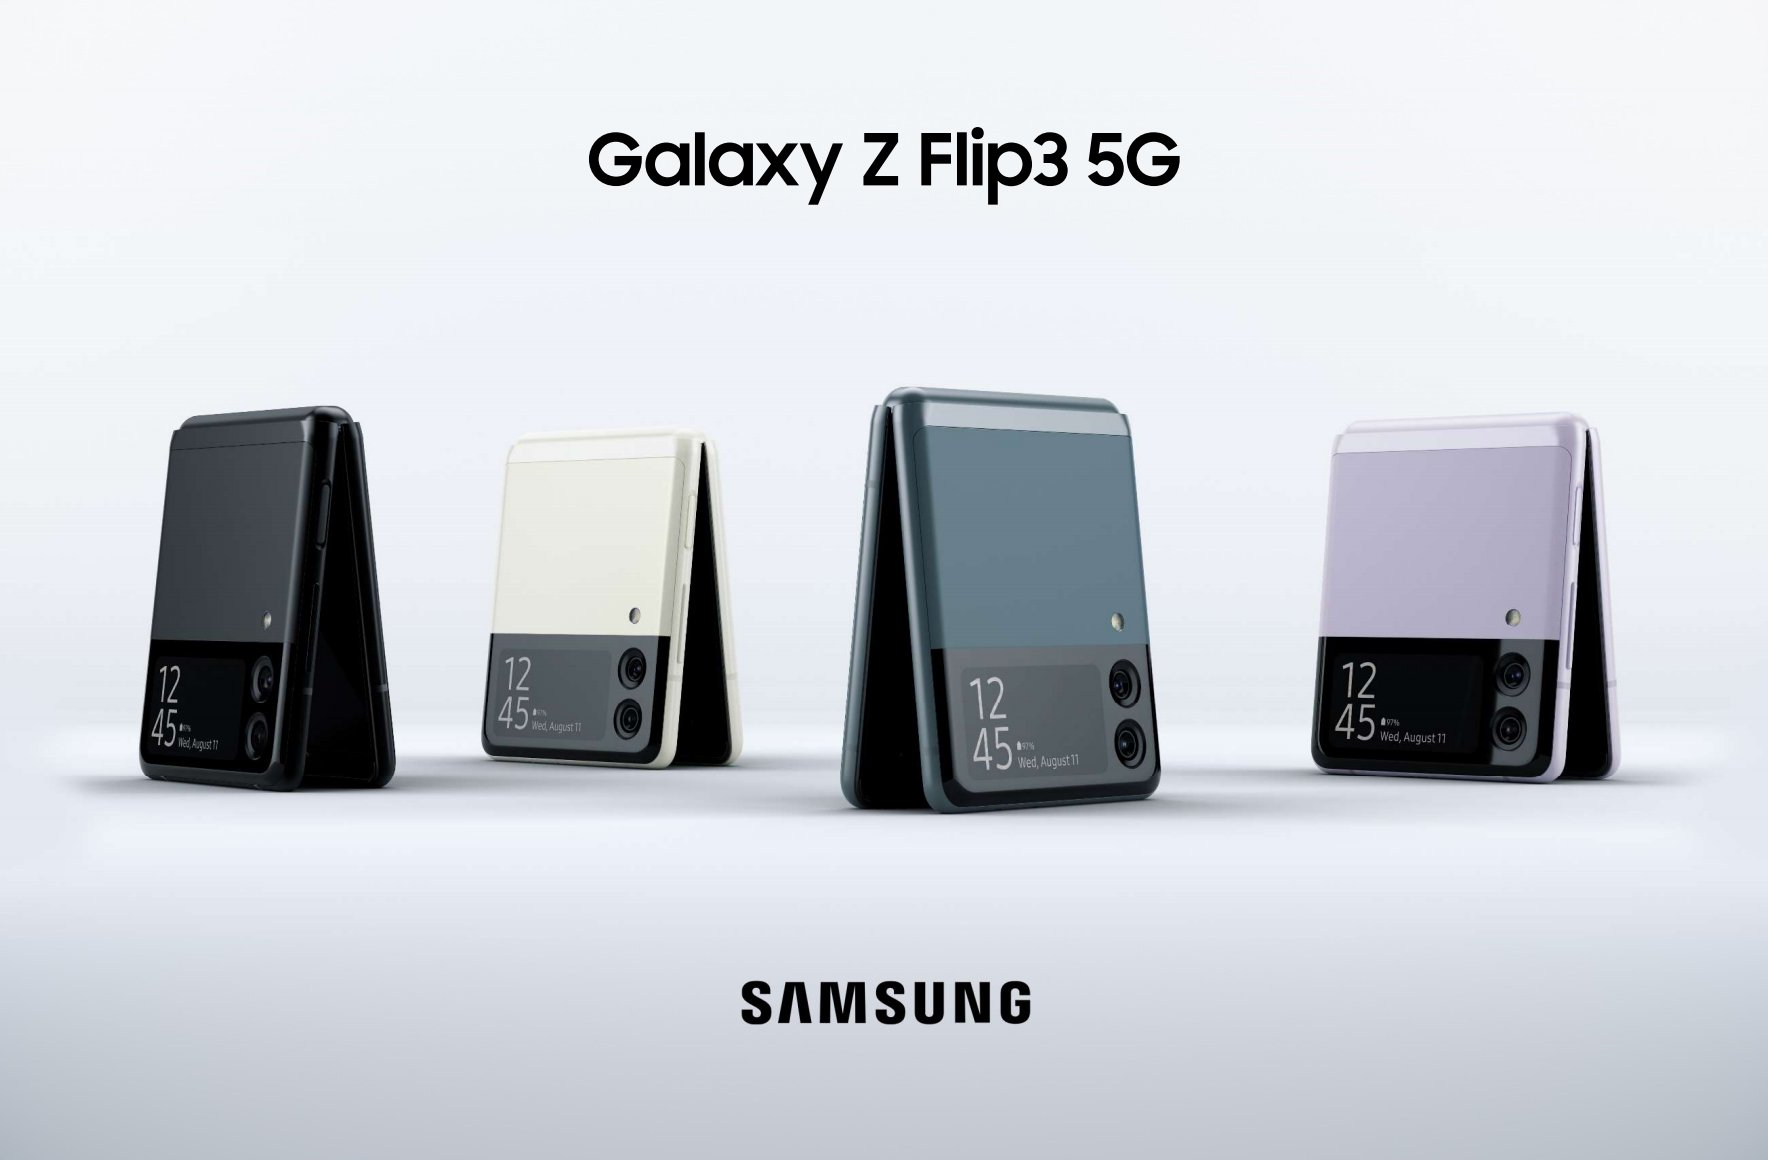 samsung and the new Z Flip 3 announced